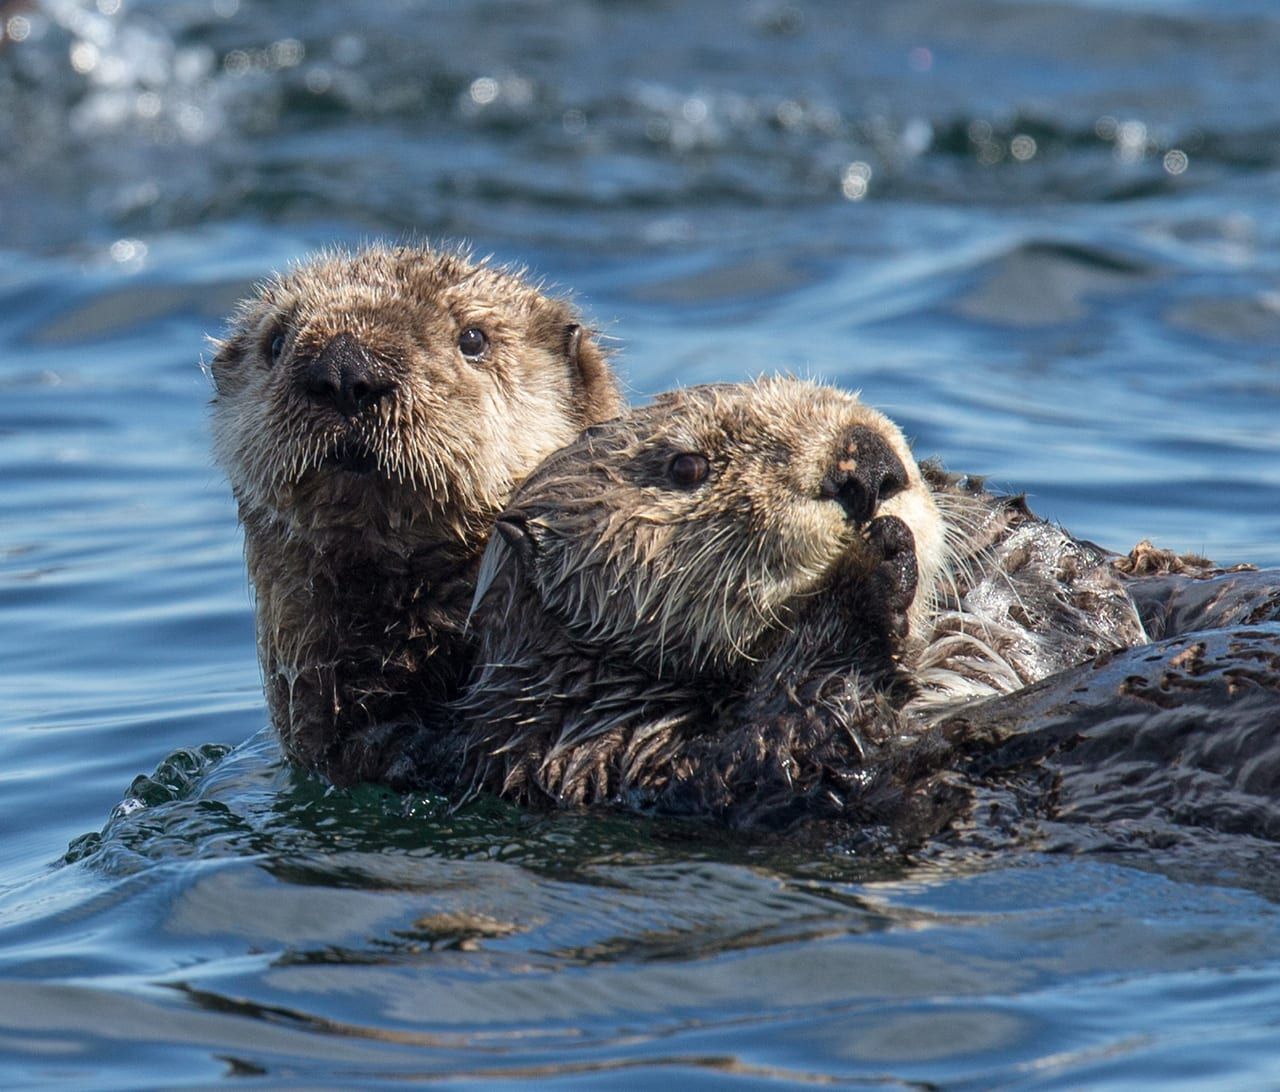 Two otters swimming together